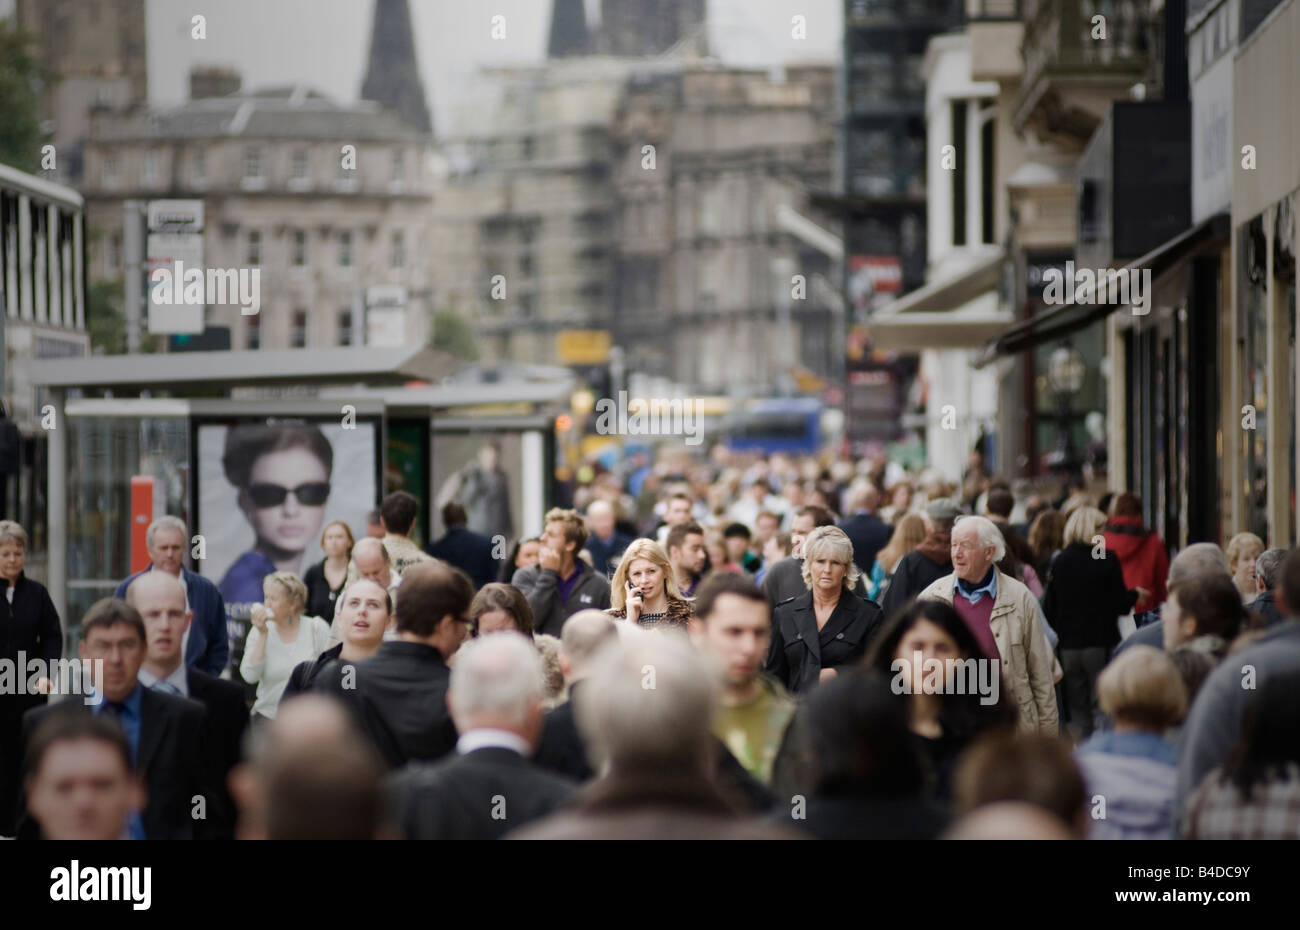 Edinburgh's Princes Street on a busy day with many people out shopping - Stock Image